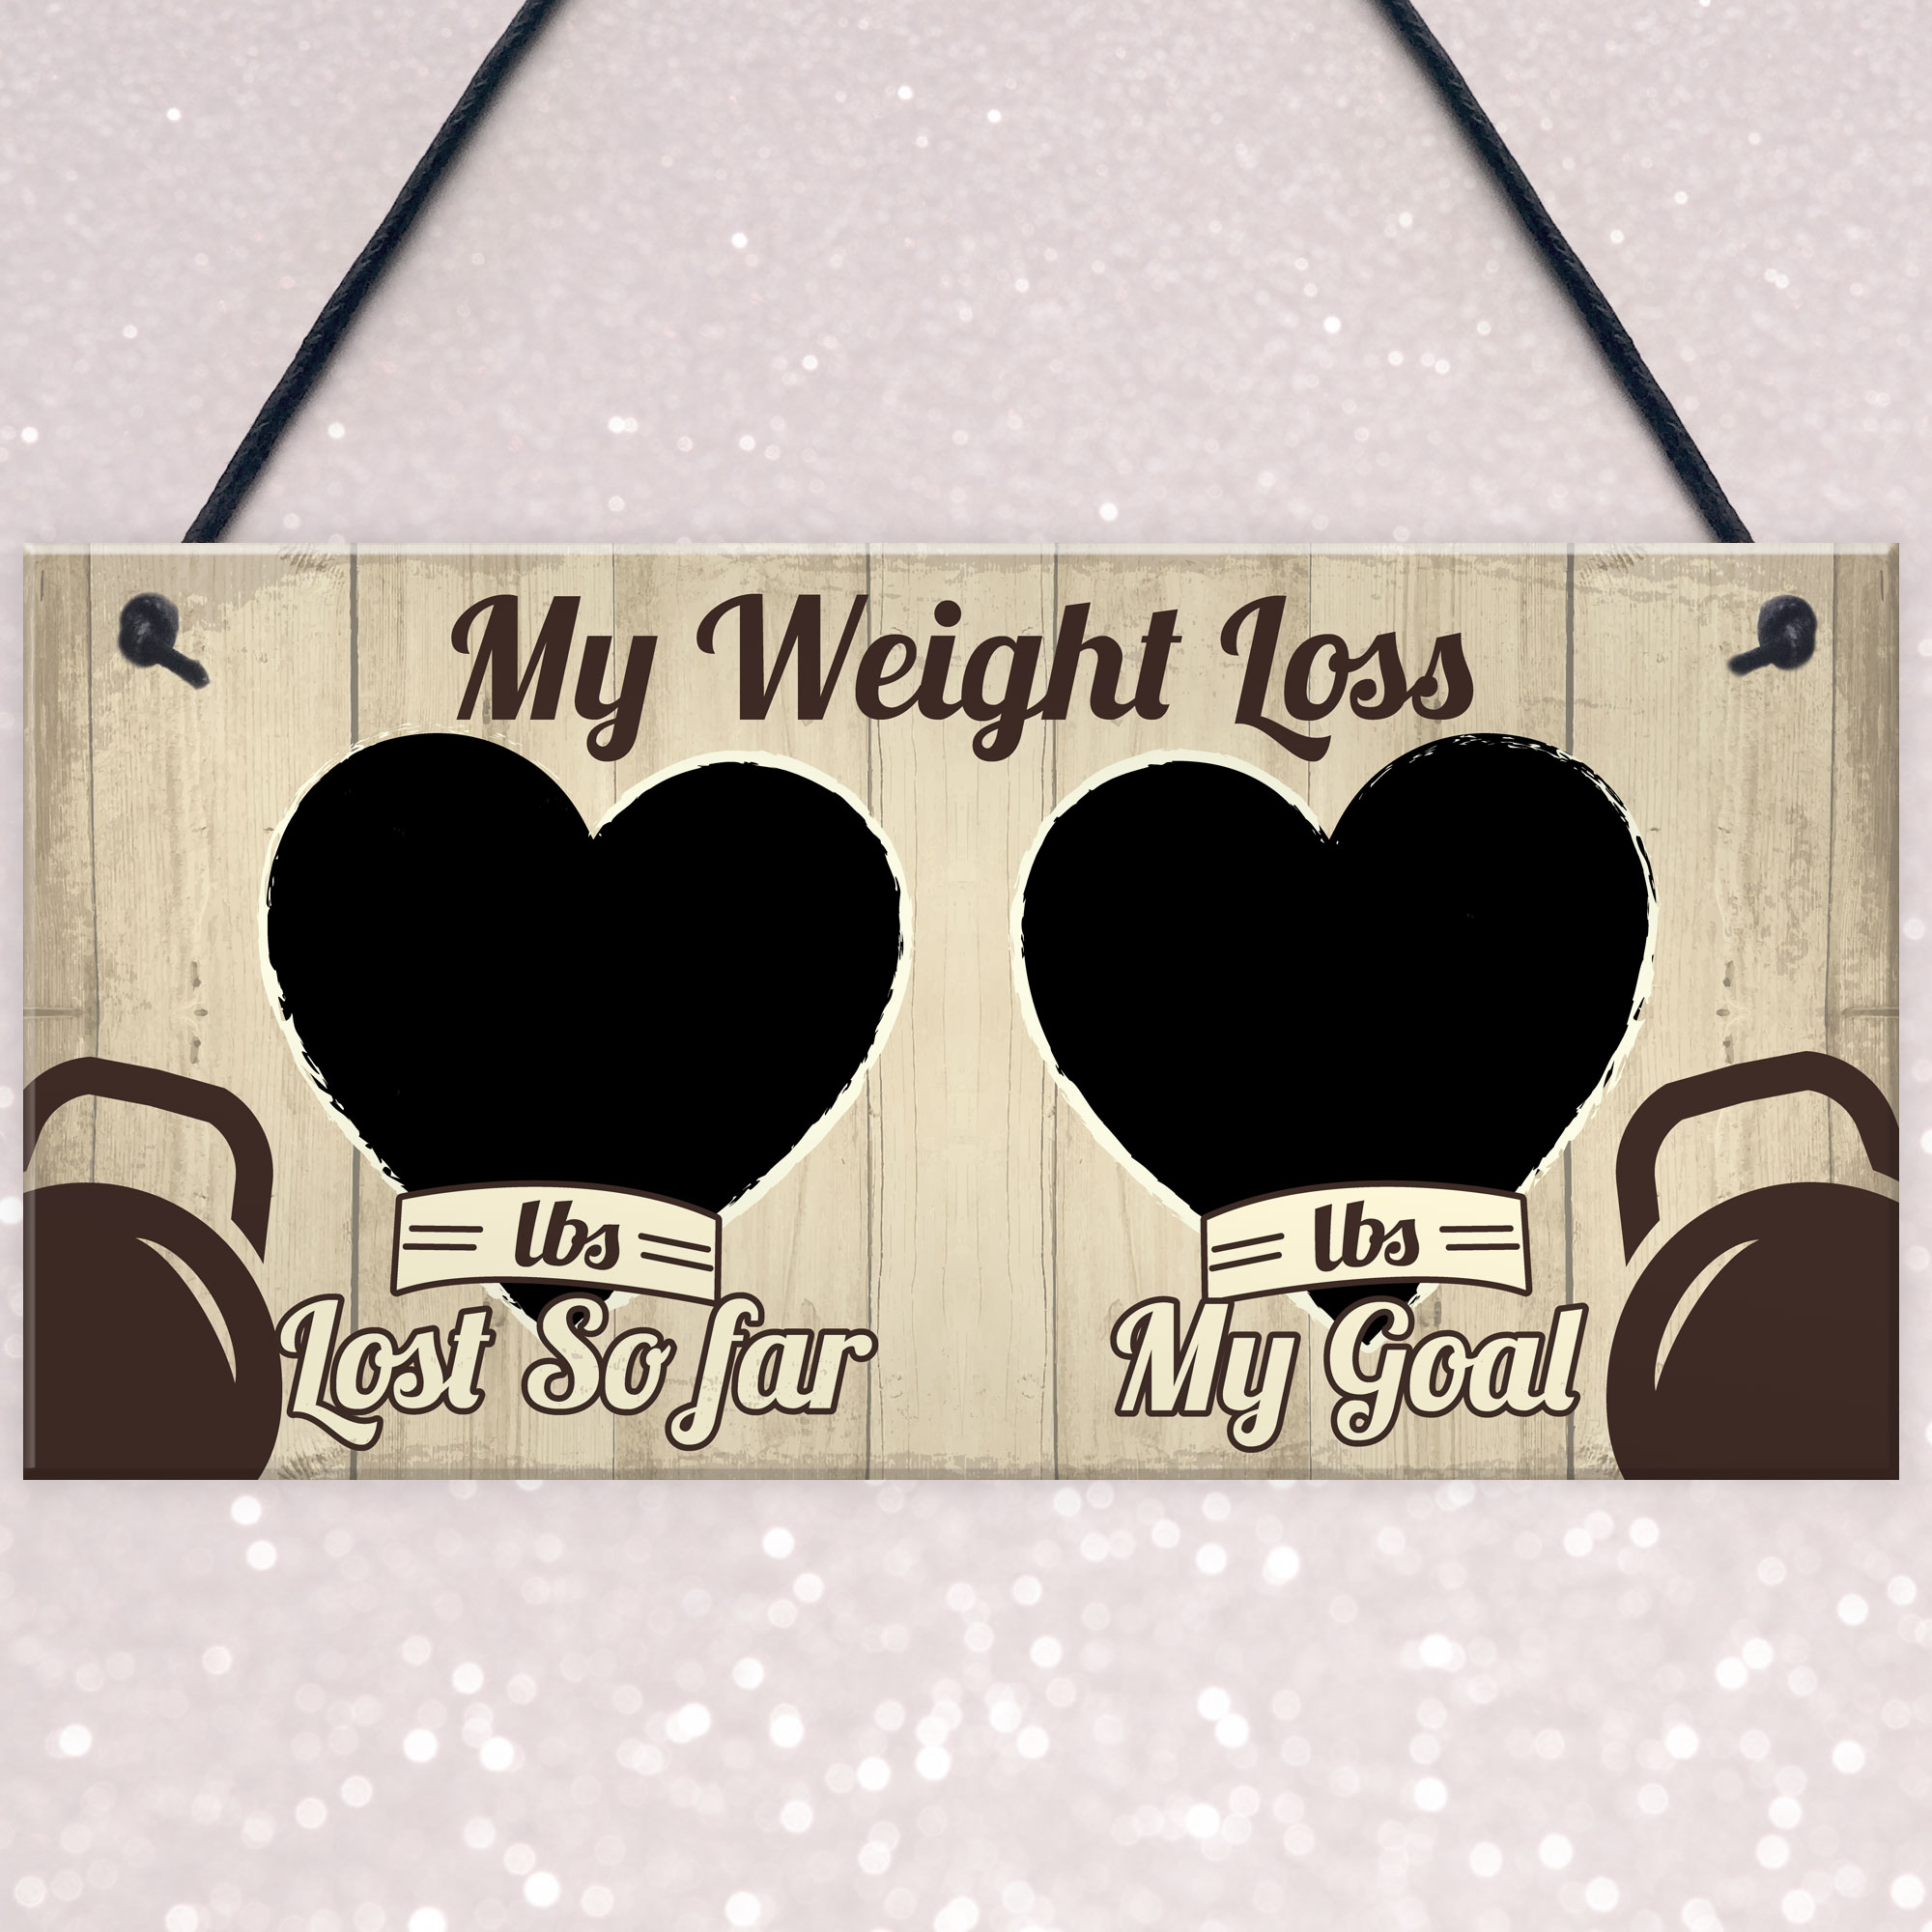 HANDMADE SHABBY CHIC WEIGHT LOSS COUNTDOWN CHART SIGN PLAQUE SLIMMING WORLD DIET